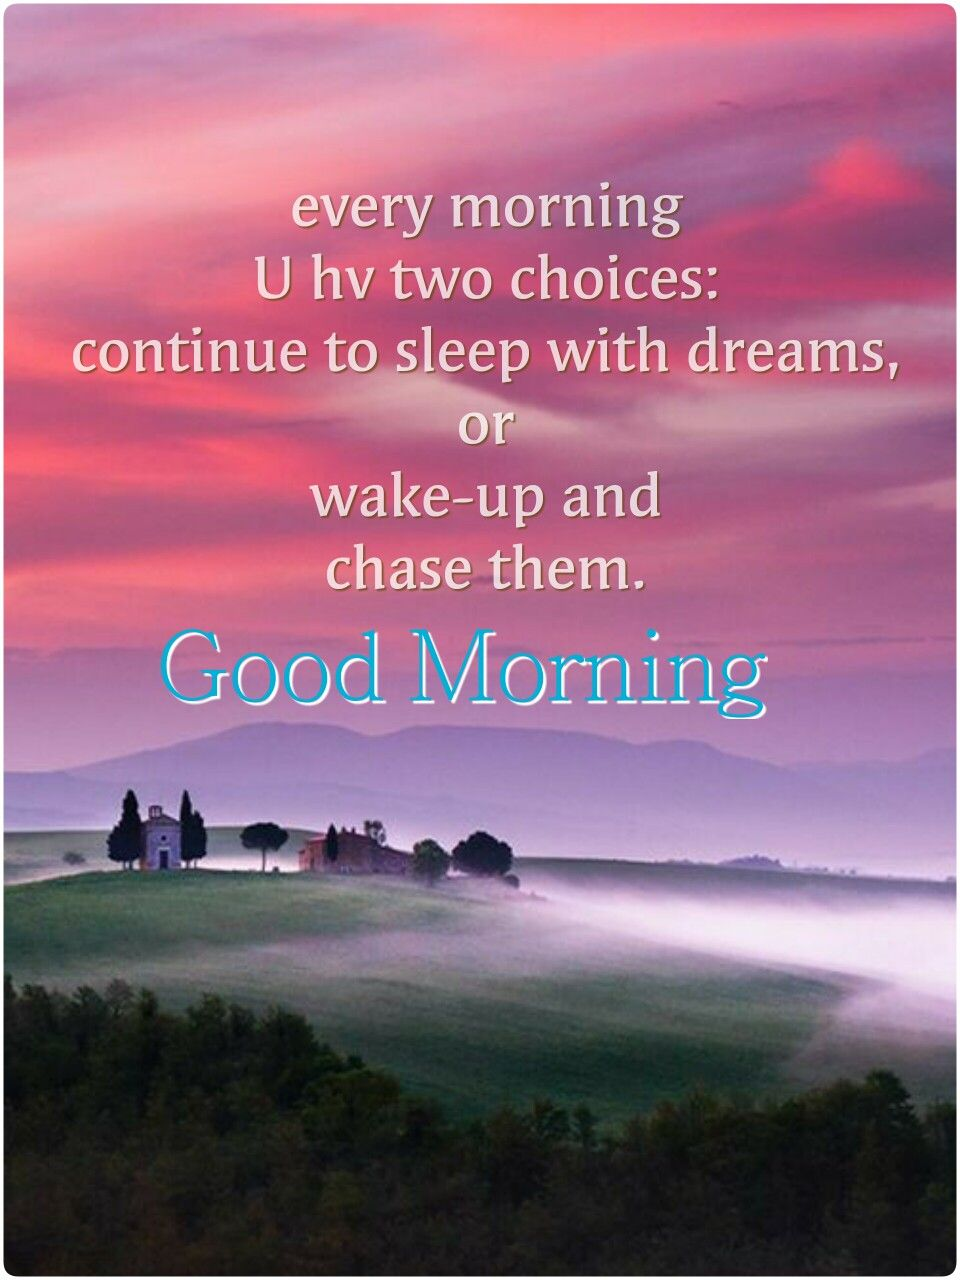 Good Morning To You I Hope You Enjoy Your Day Good Morning Quotes Beautiful Morning Quotes Morning Quotes